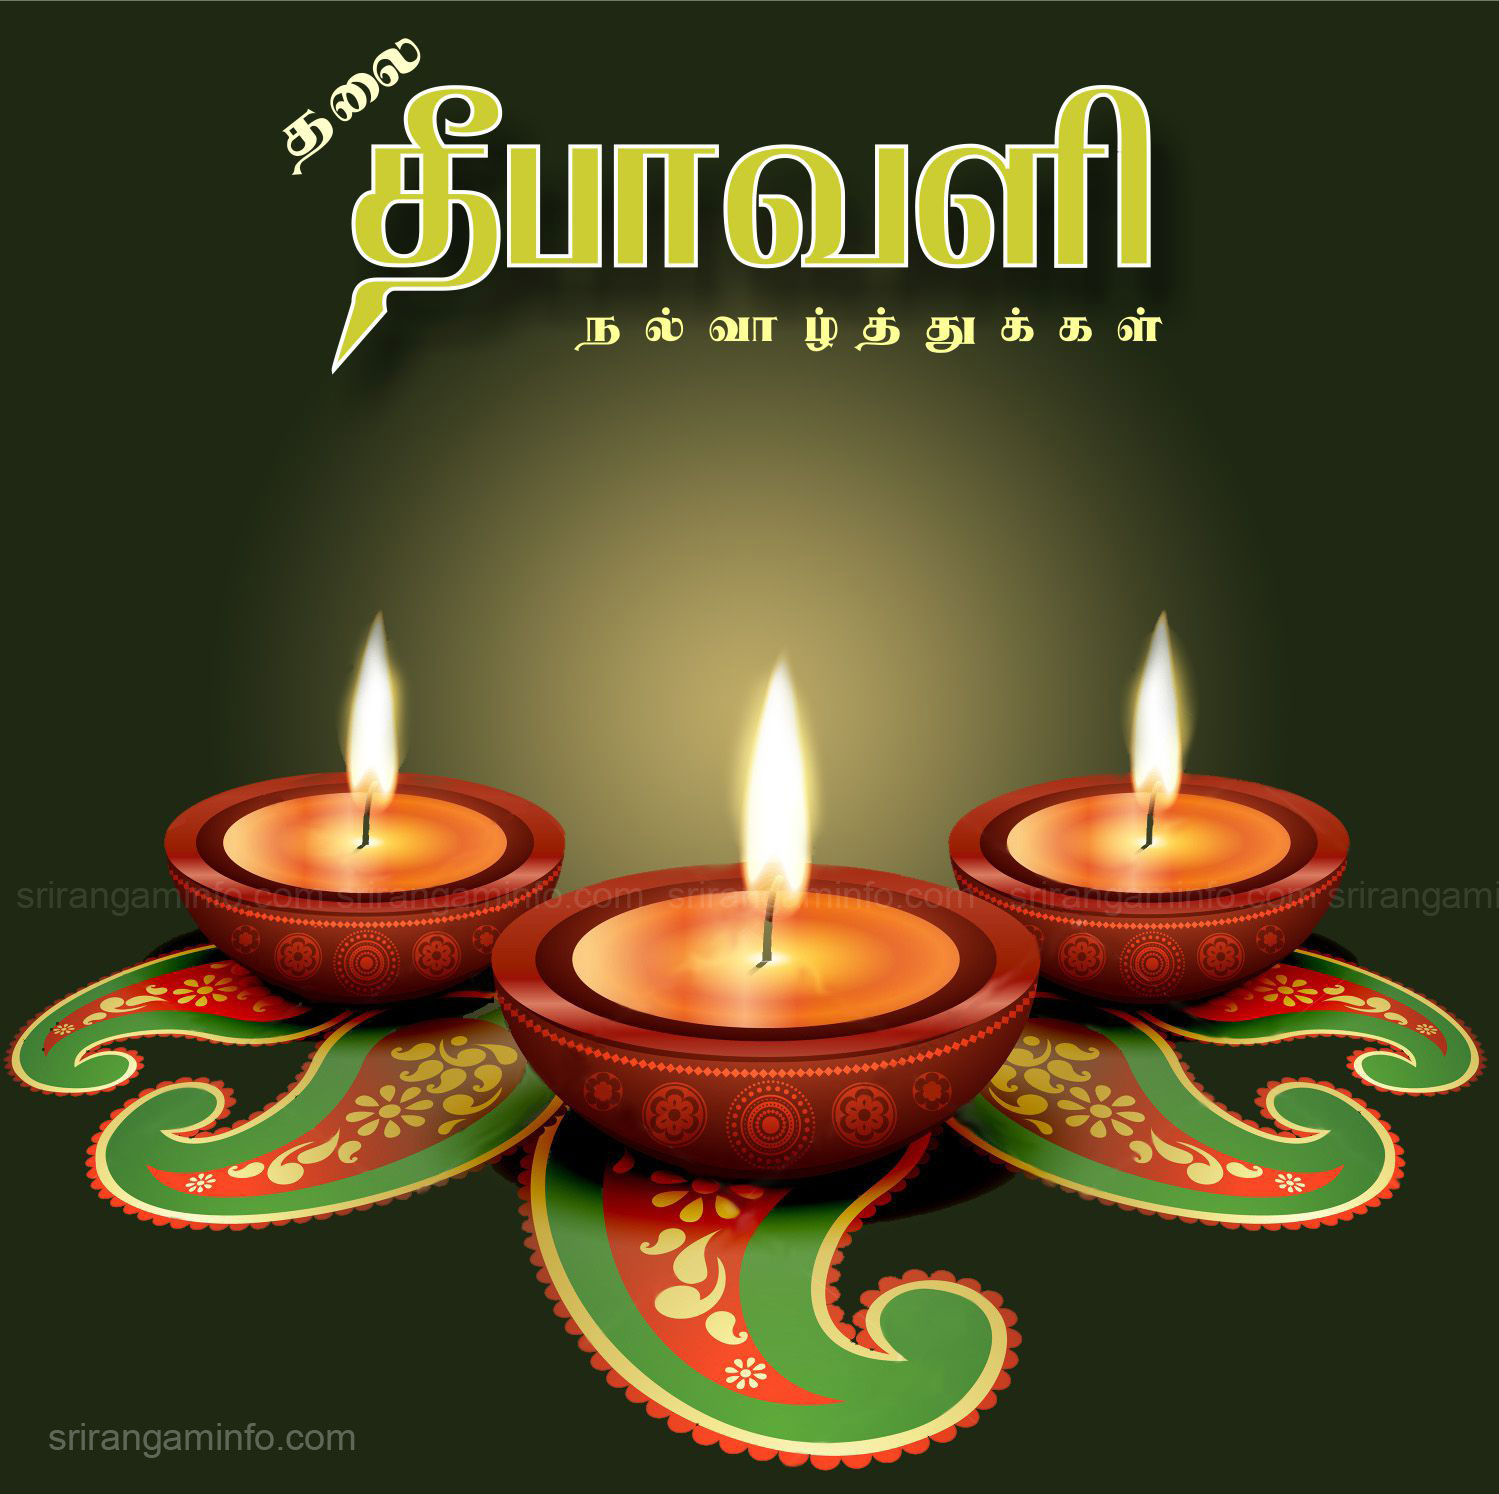 Deepavali greetings in tamil 2017 thalai deepavali greetings tamil m4hsunfo